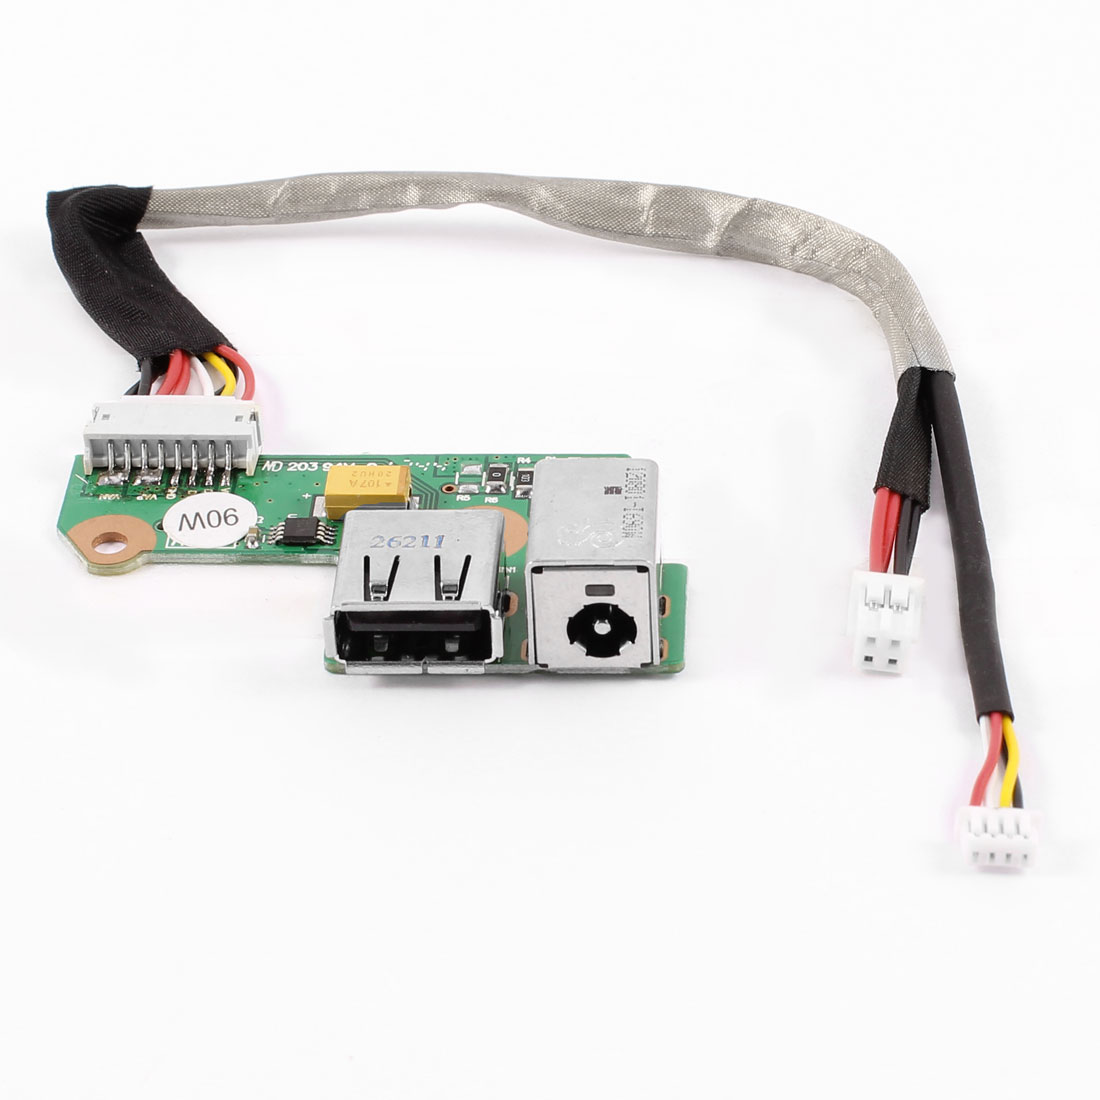 DC Power Jack Socket Cable Wire USB Port Board 90W PJ126 for HP Pavilion DV6000